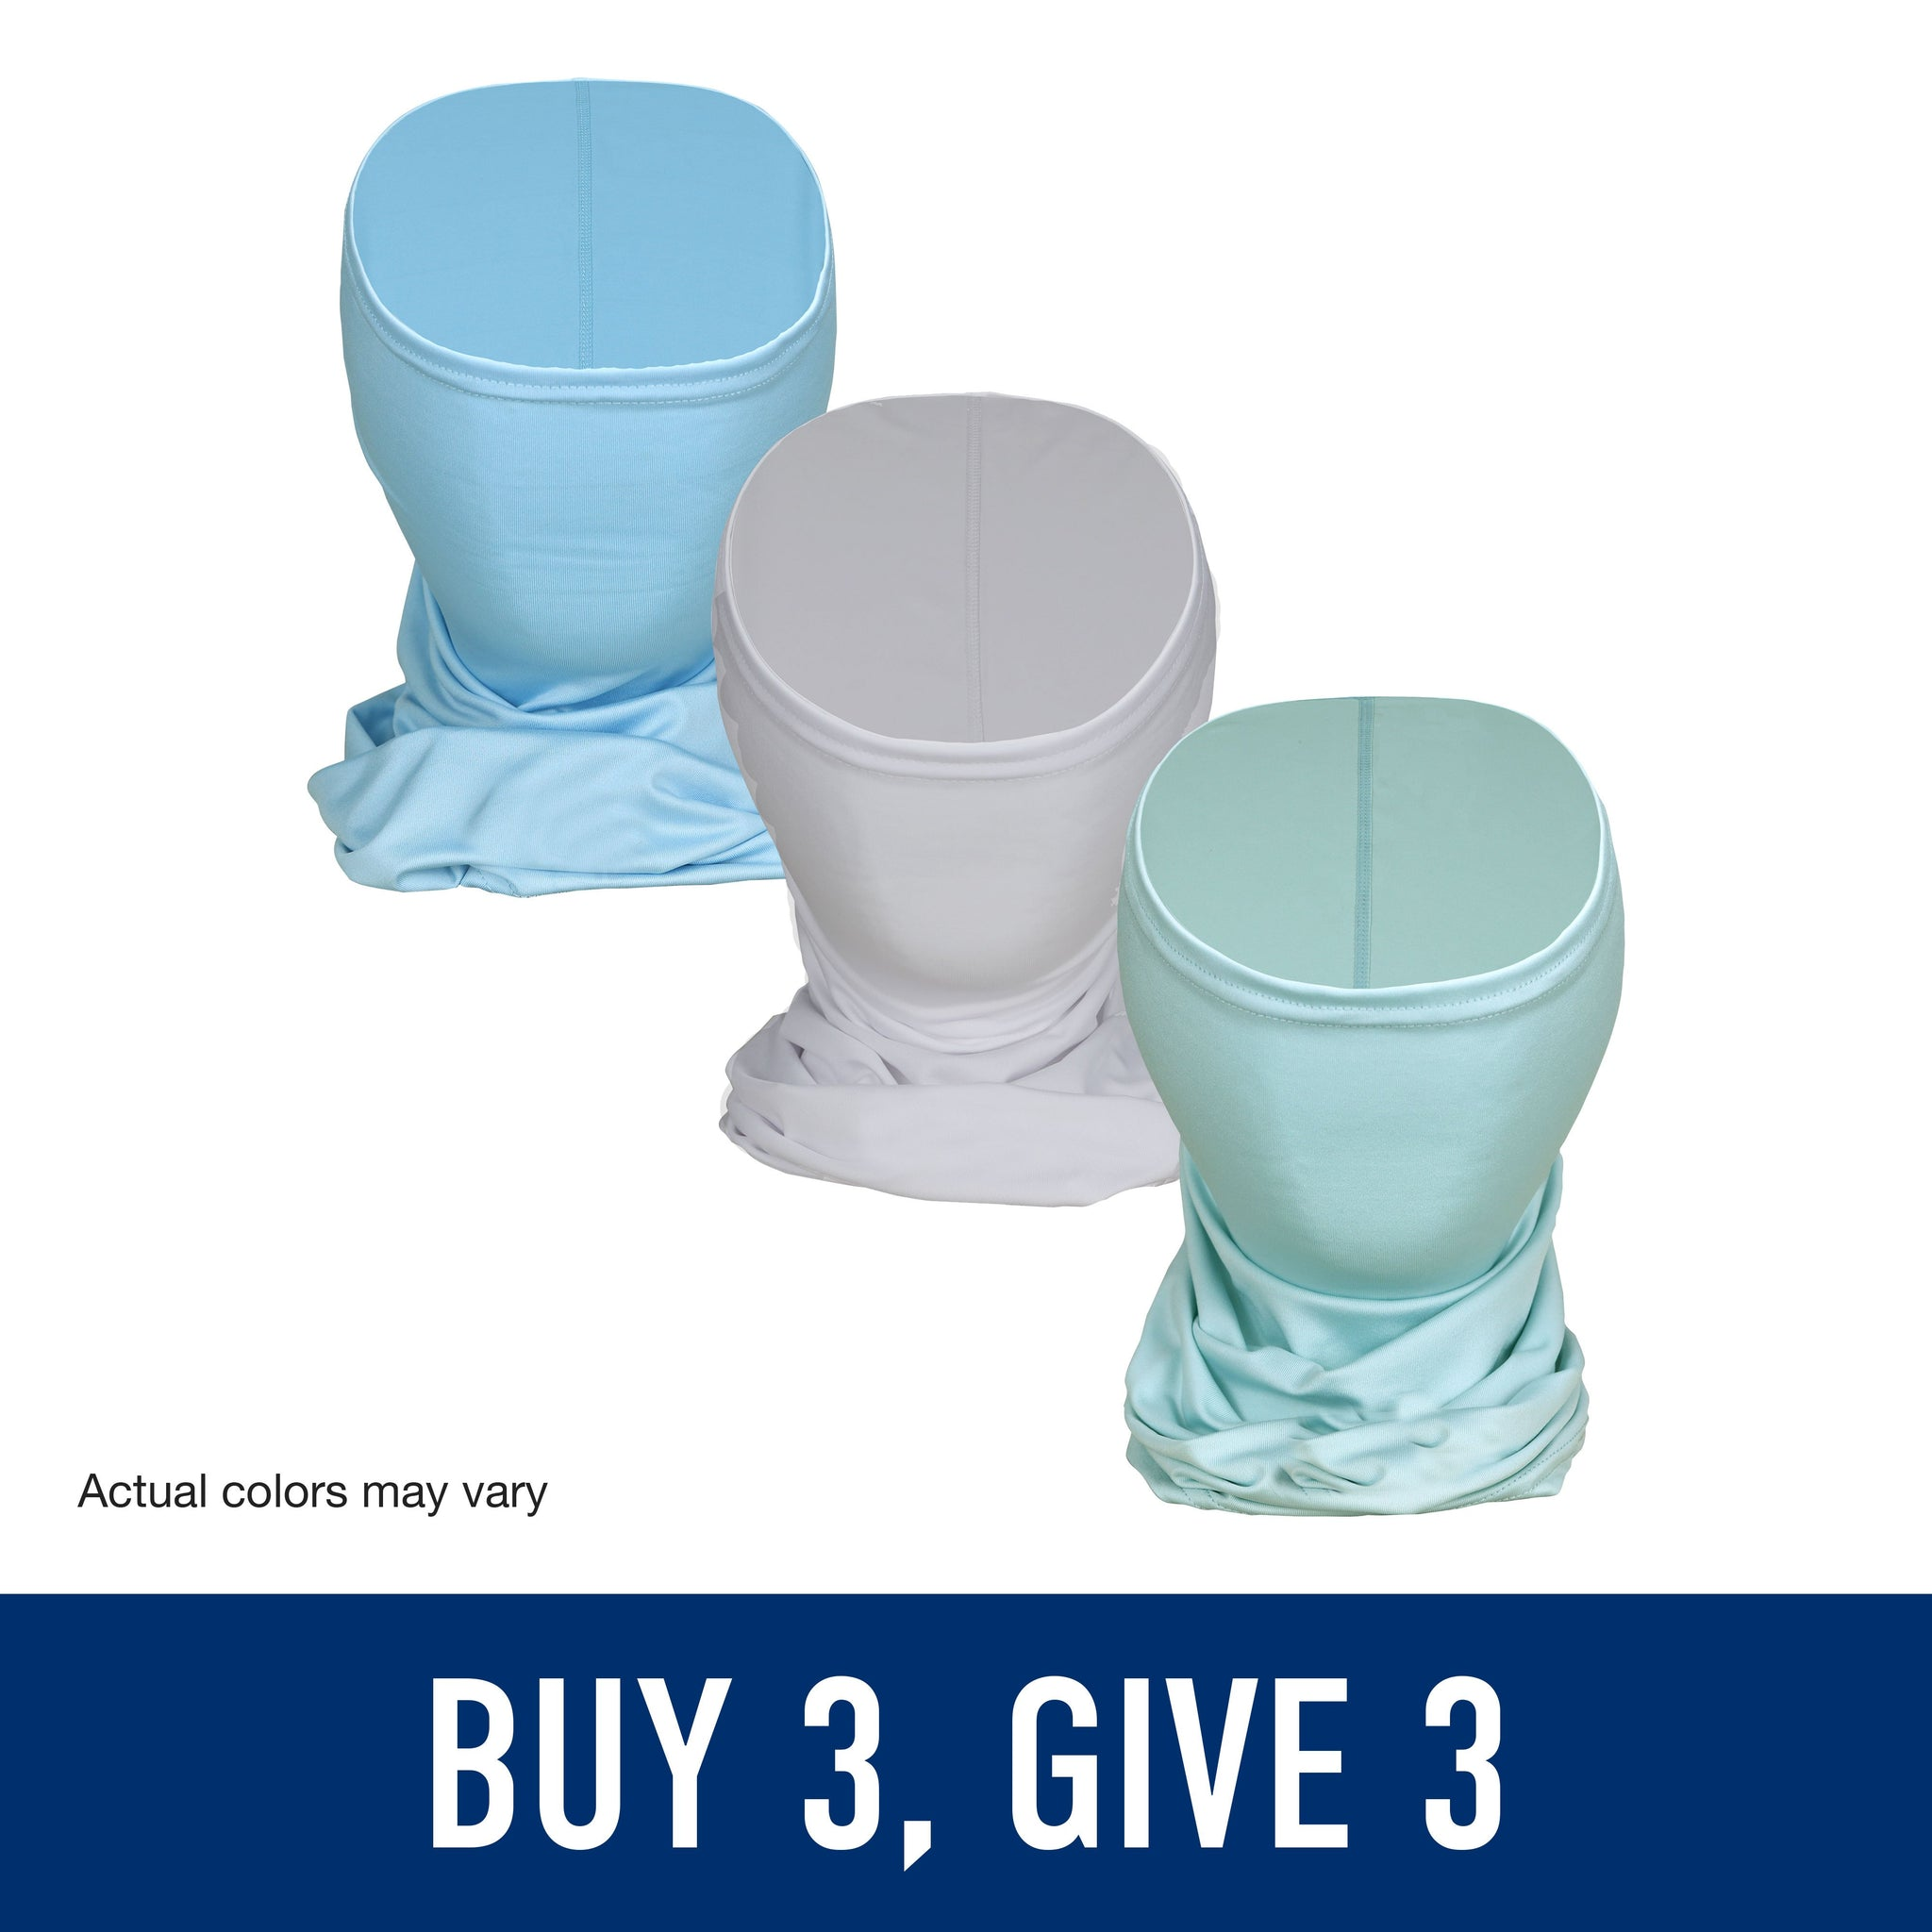 Buy 3 Give 3 Fishing Face Masks from AFTCO during COVID-19 pandemic